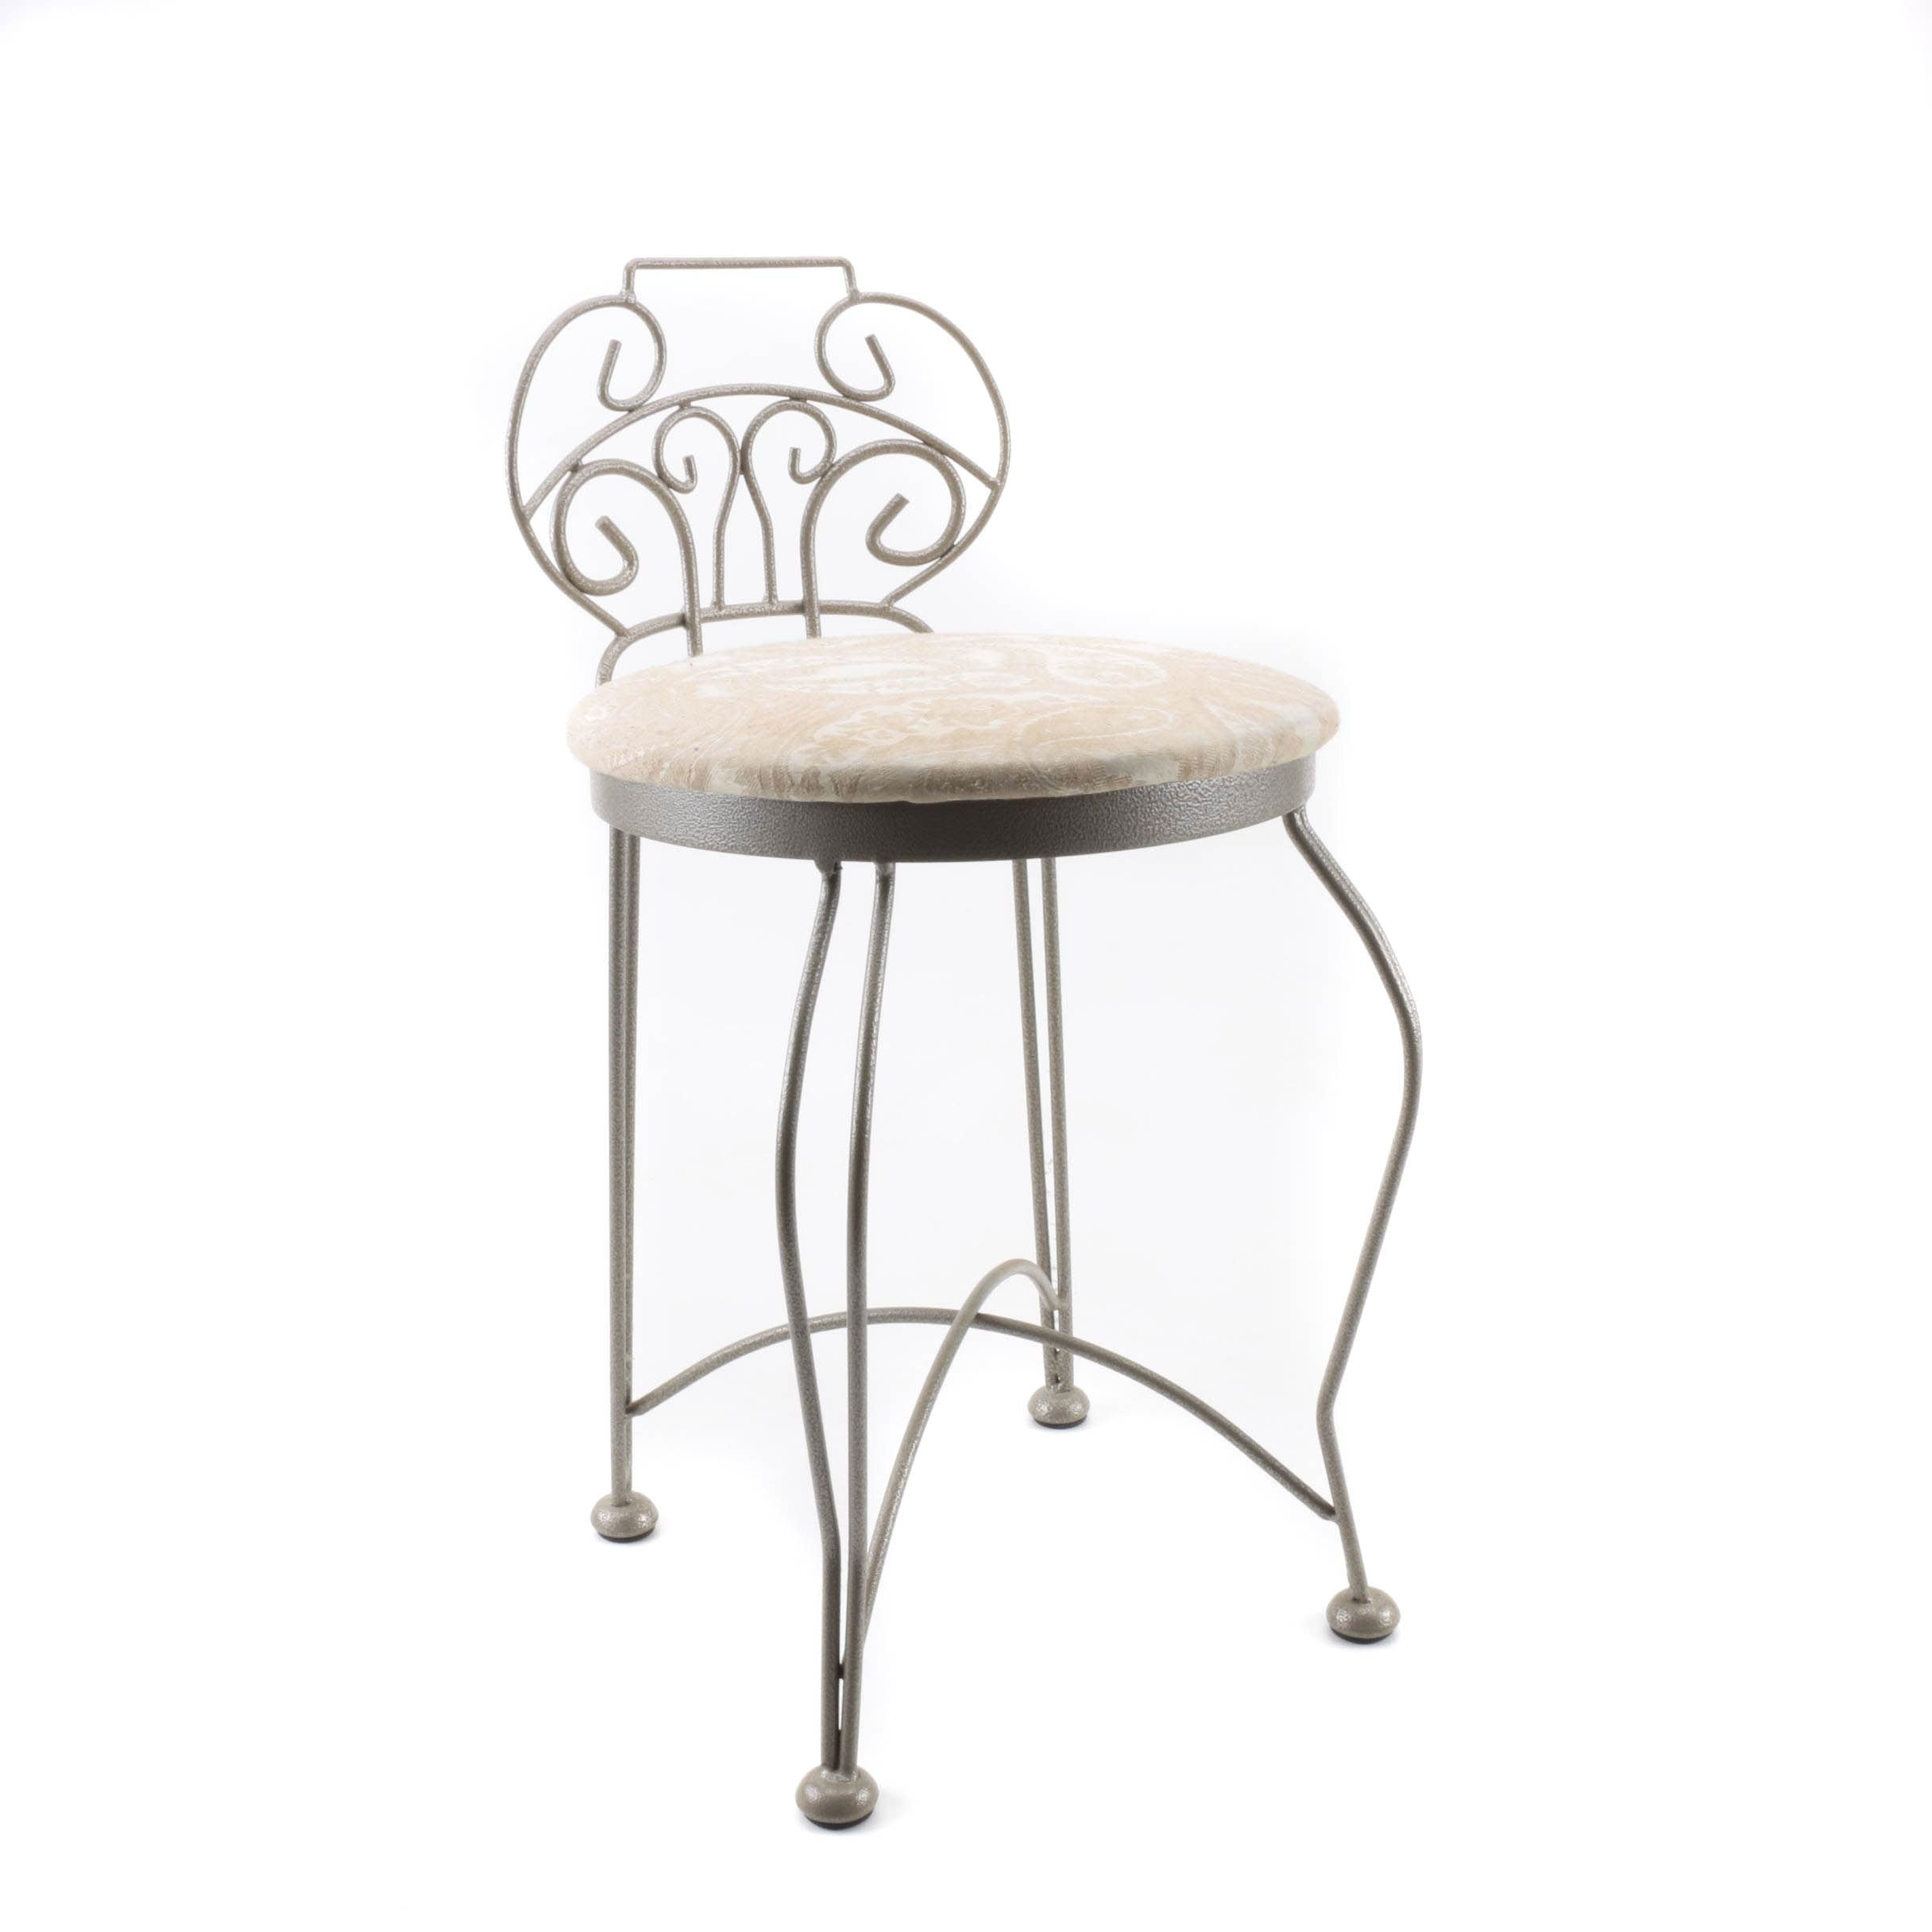 Ice Cream Parlor Style Chair by Homtomi America, Inc.